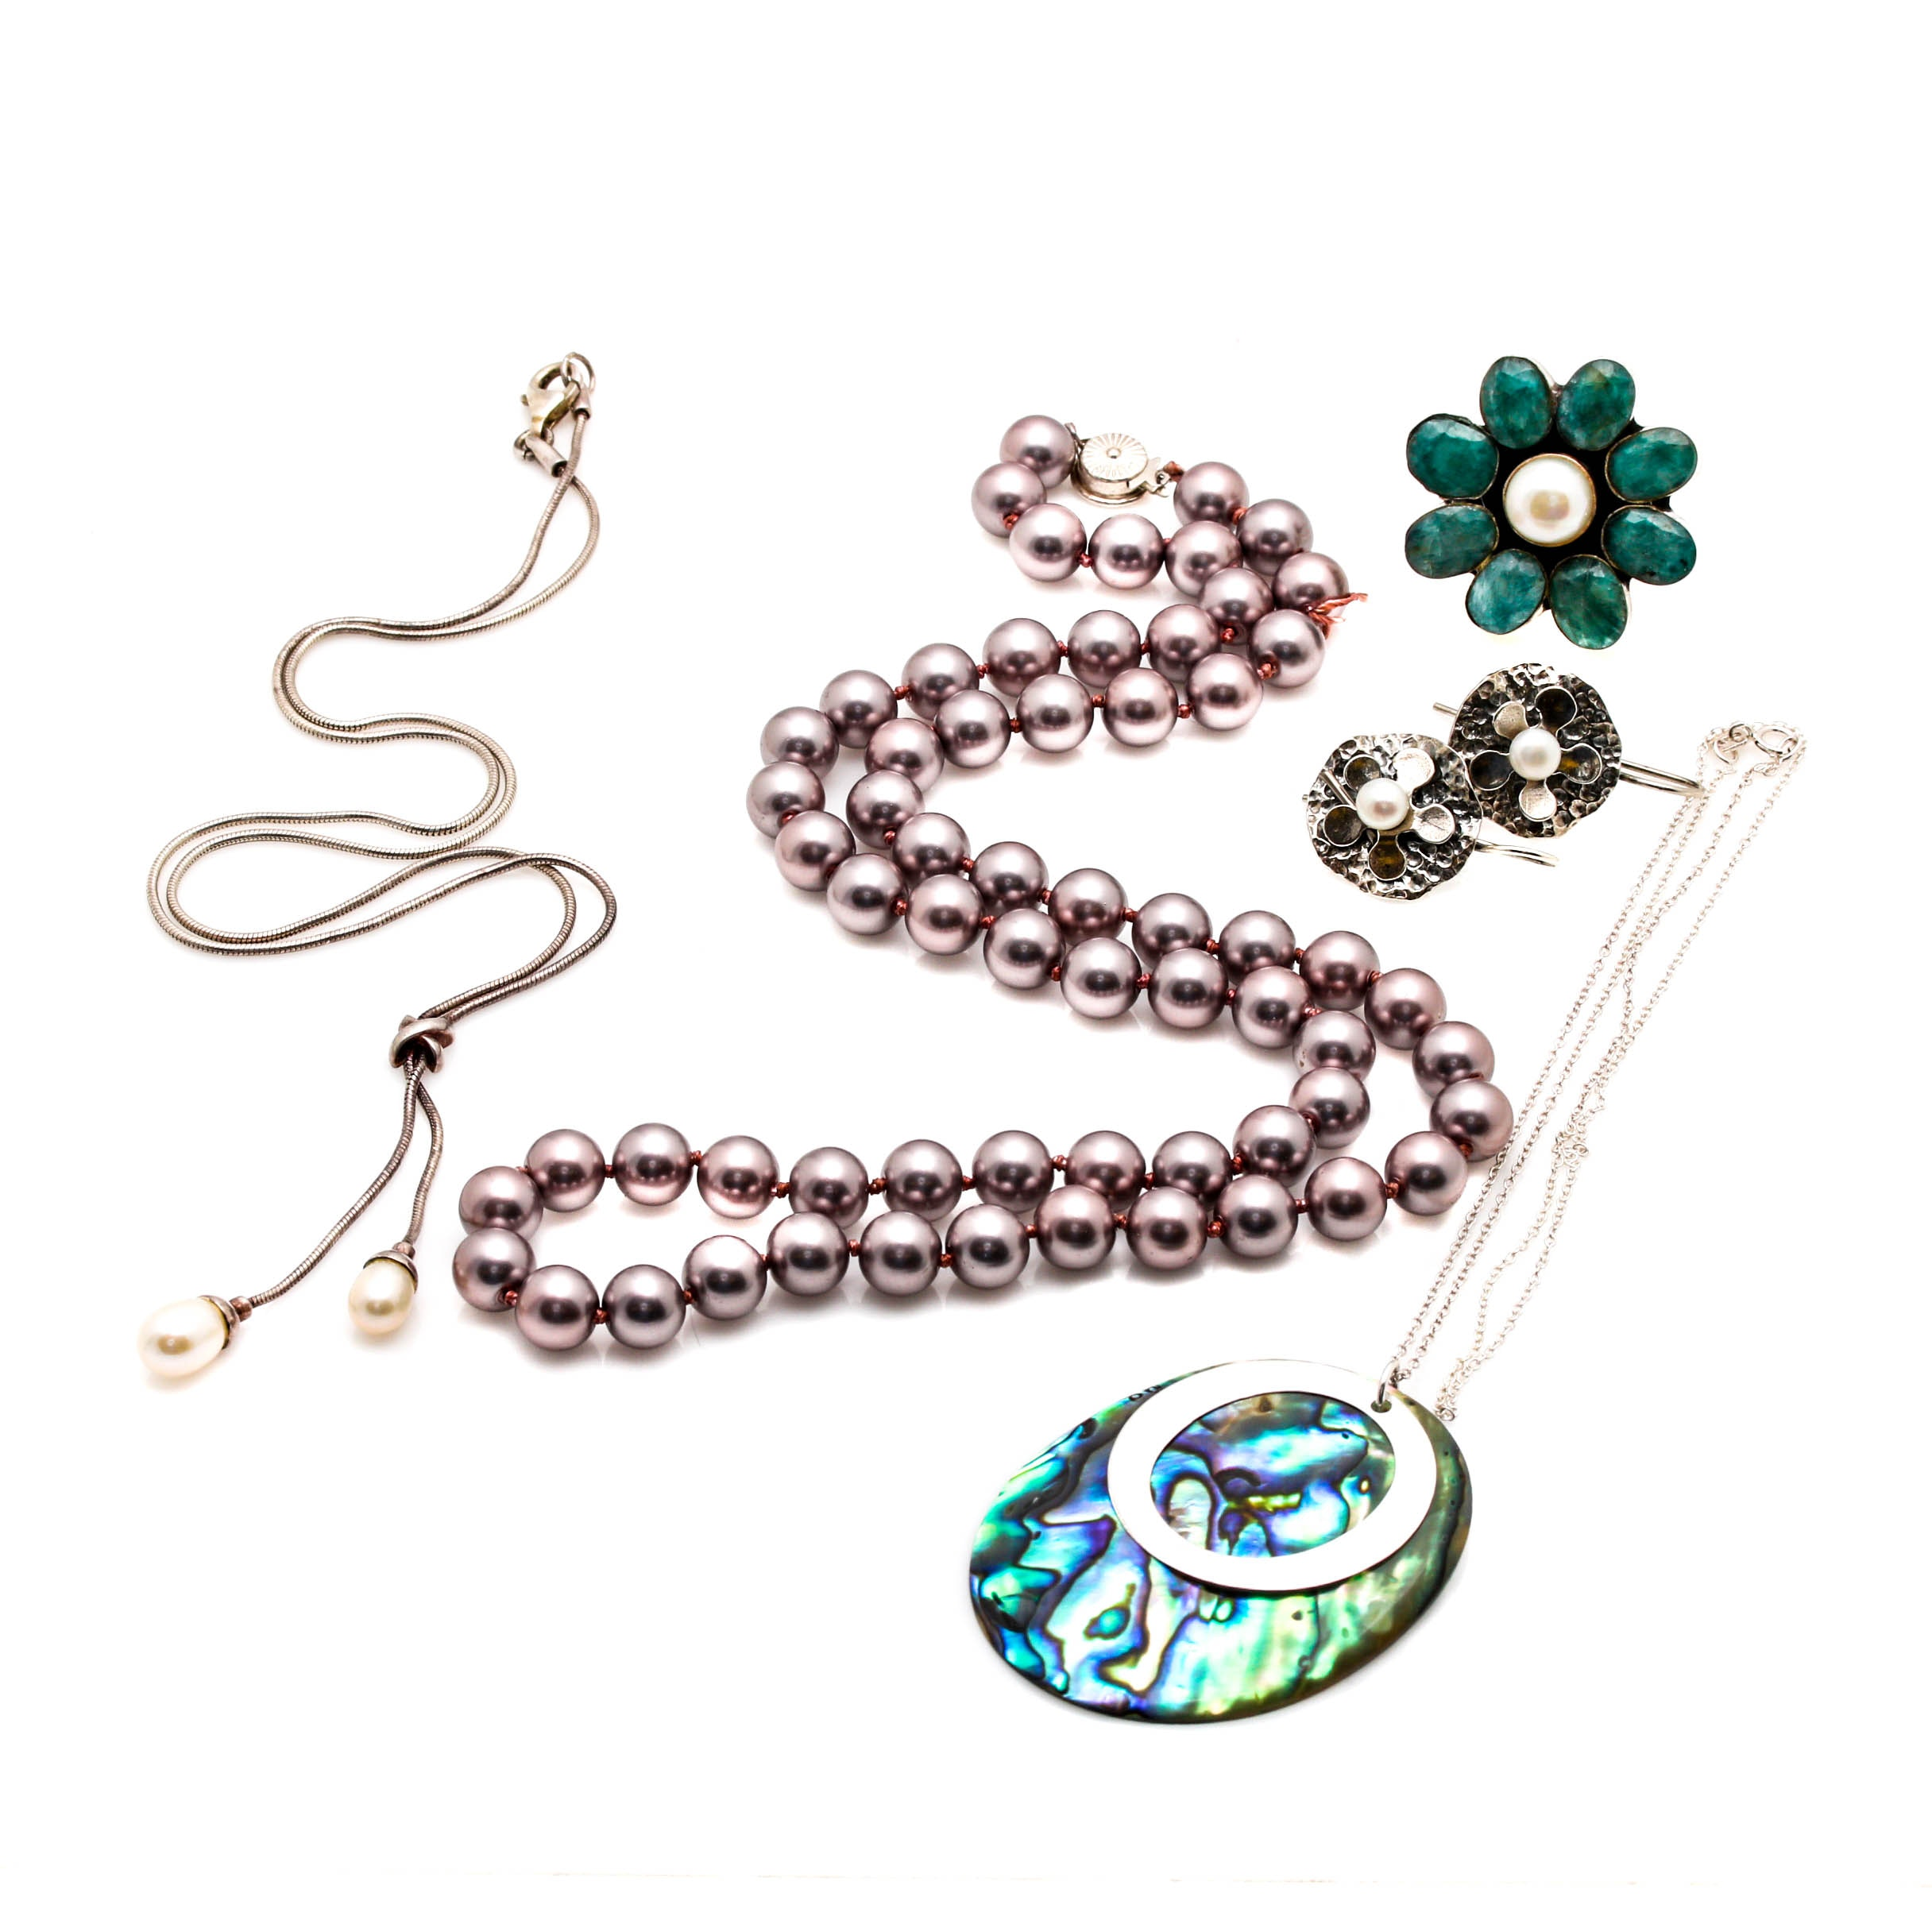 Grouping of Sterling Silver Jewelry Including Abalone